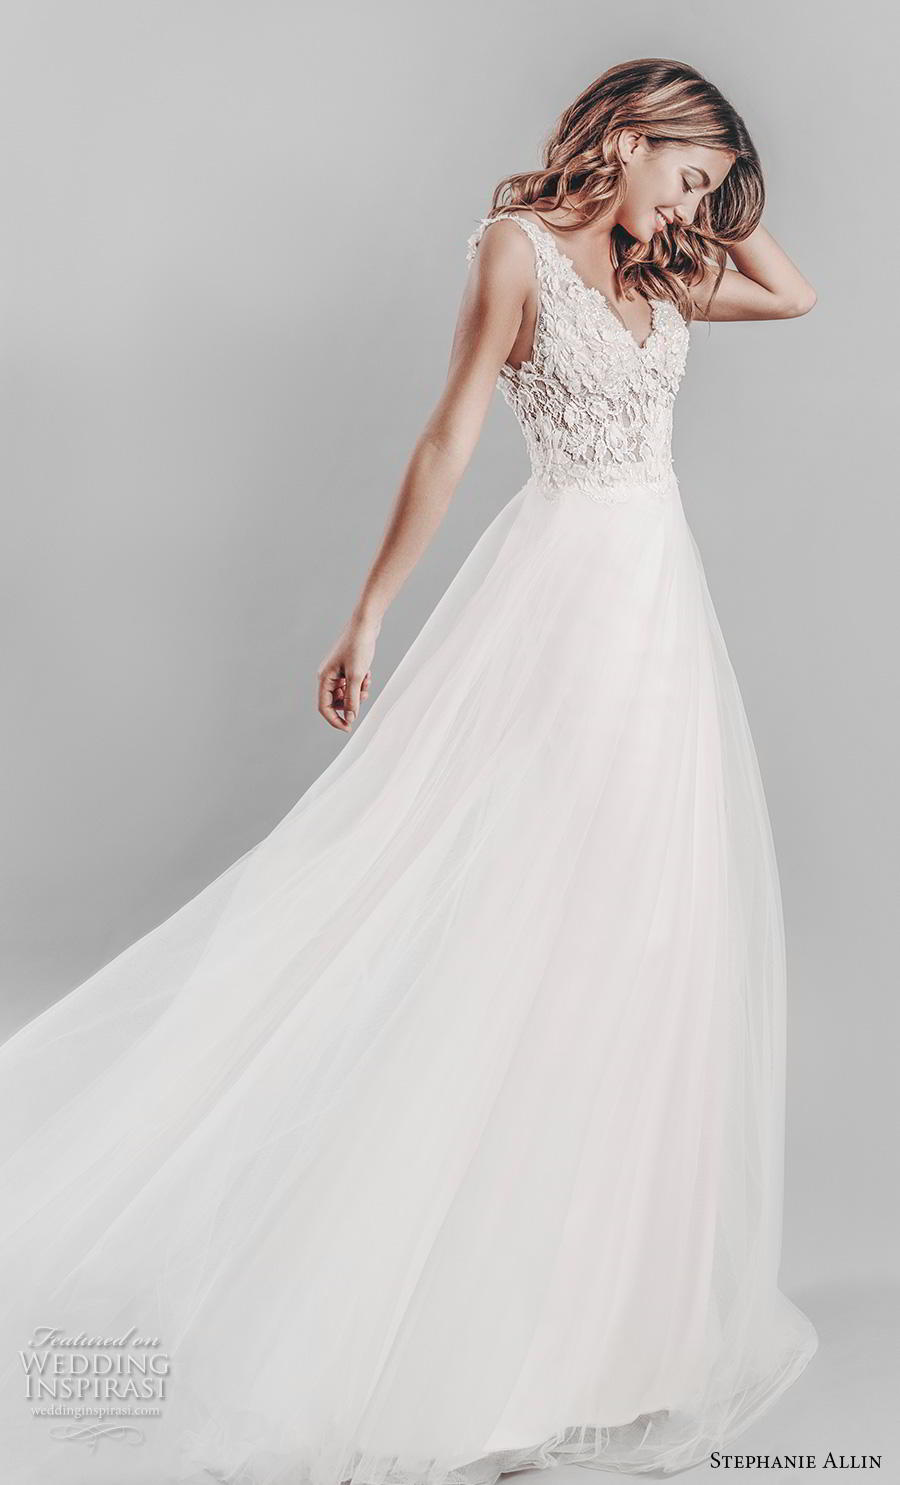 stephanie allin 2019 bridal sleeveless v neck heavily embellished bodice romantic a  line wedding dress open v back chapel train (13) mv